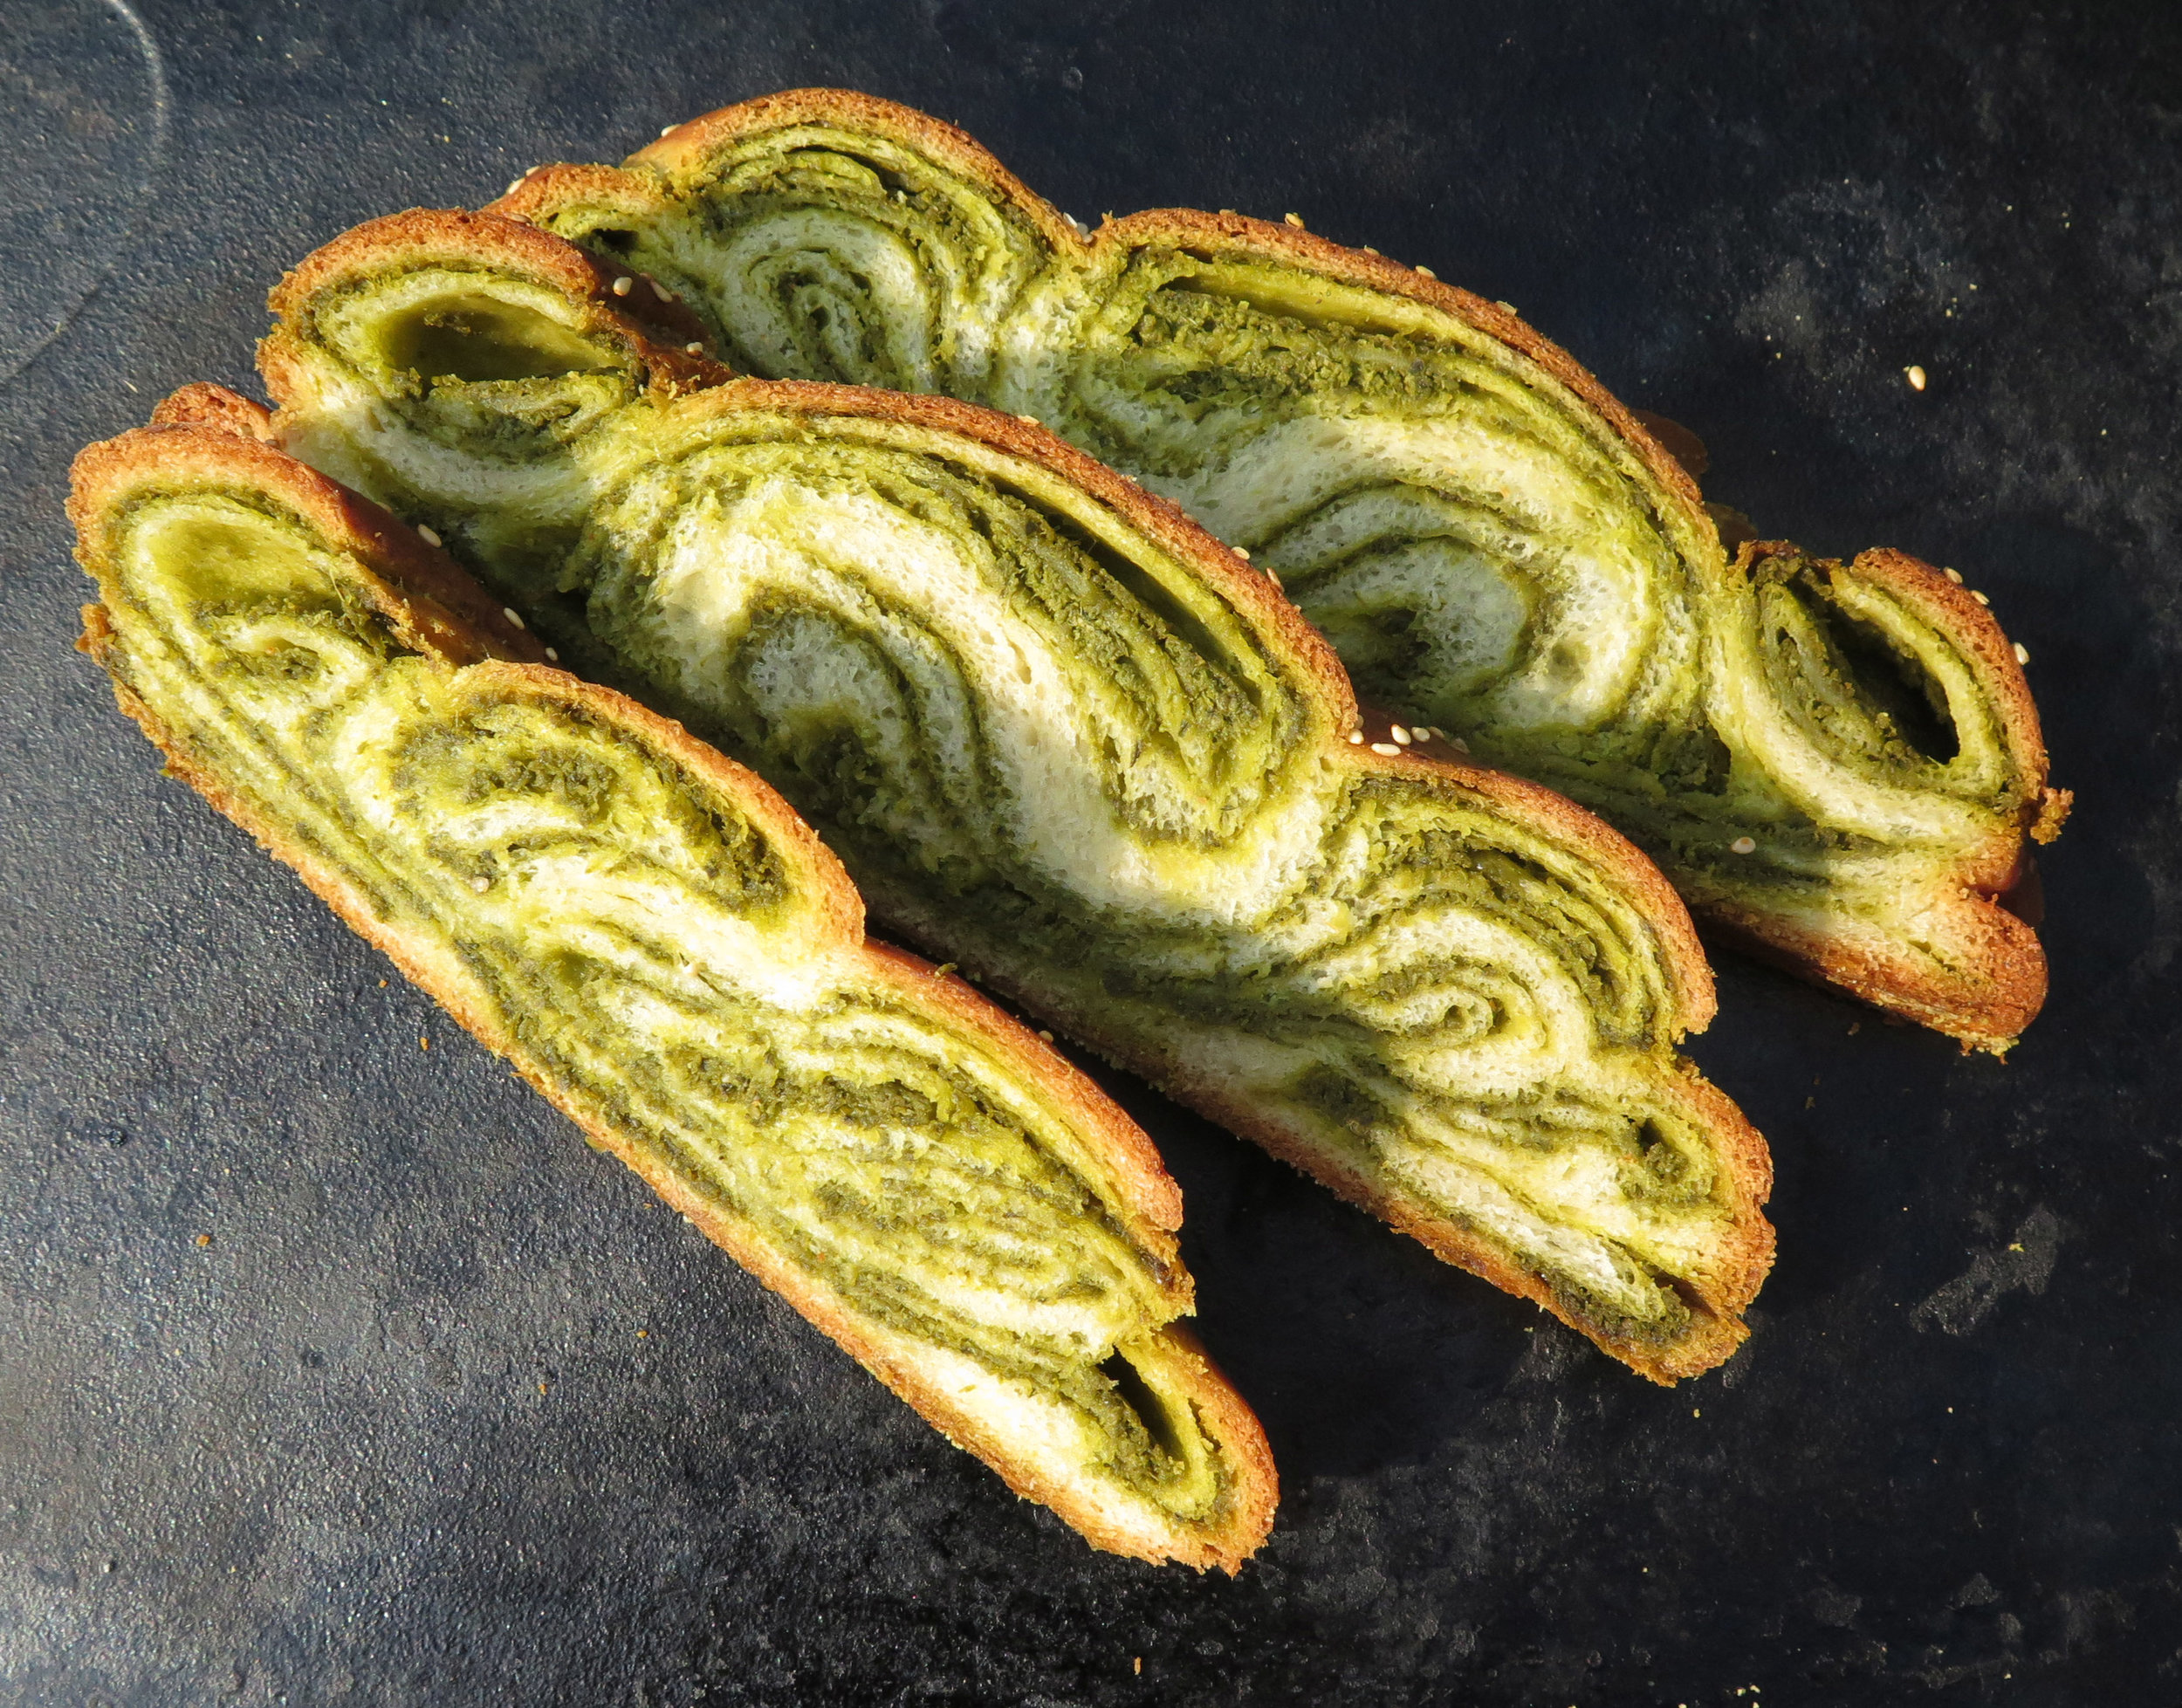 WILD GARLIC AND NETTLE CHALLAH